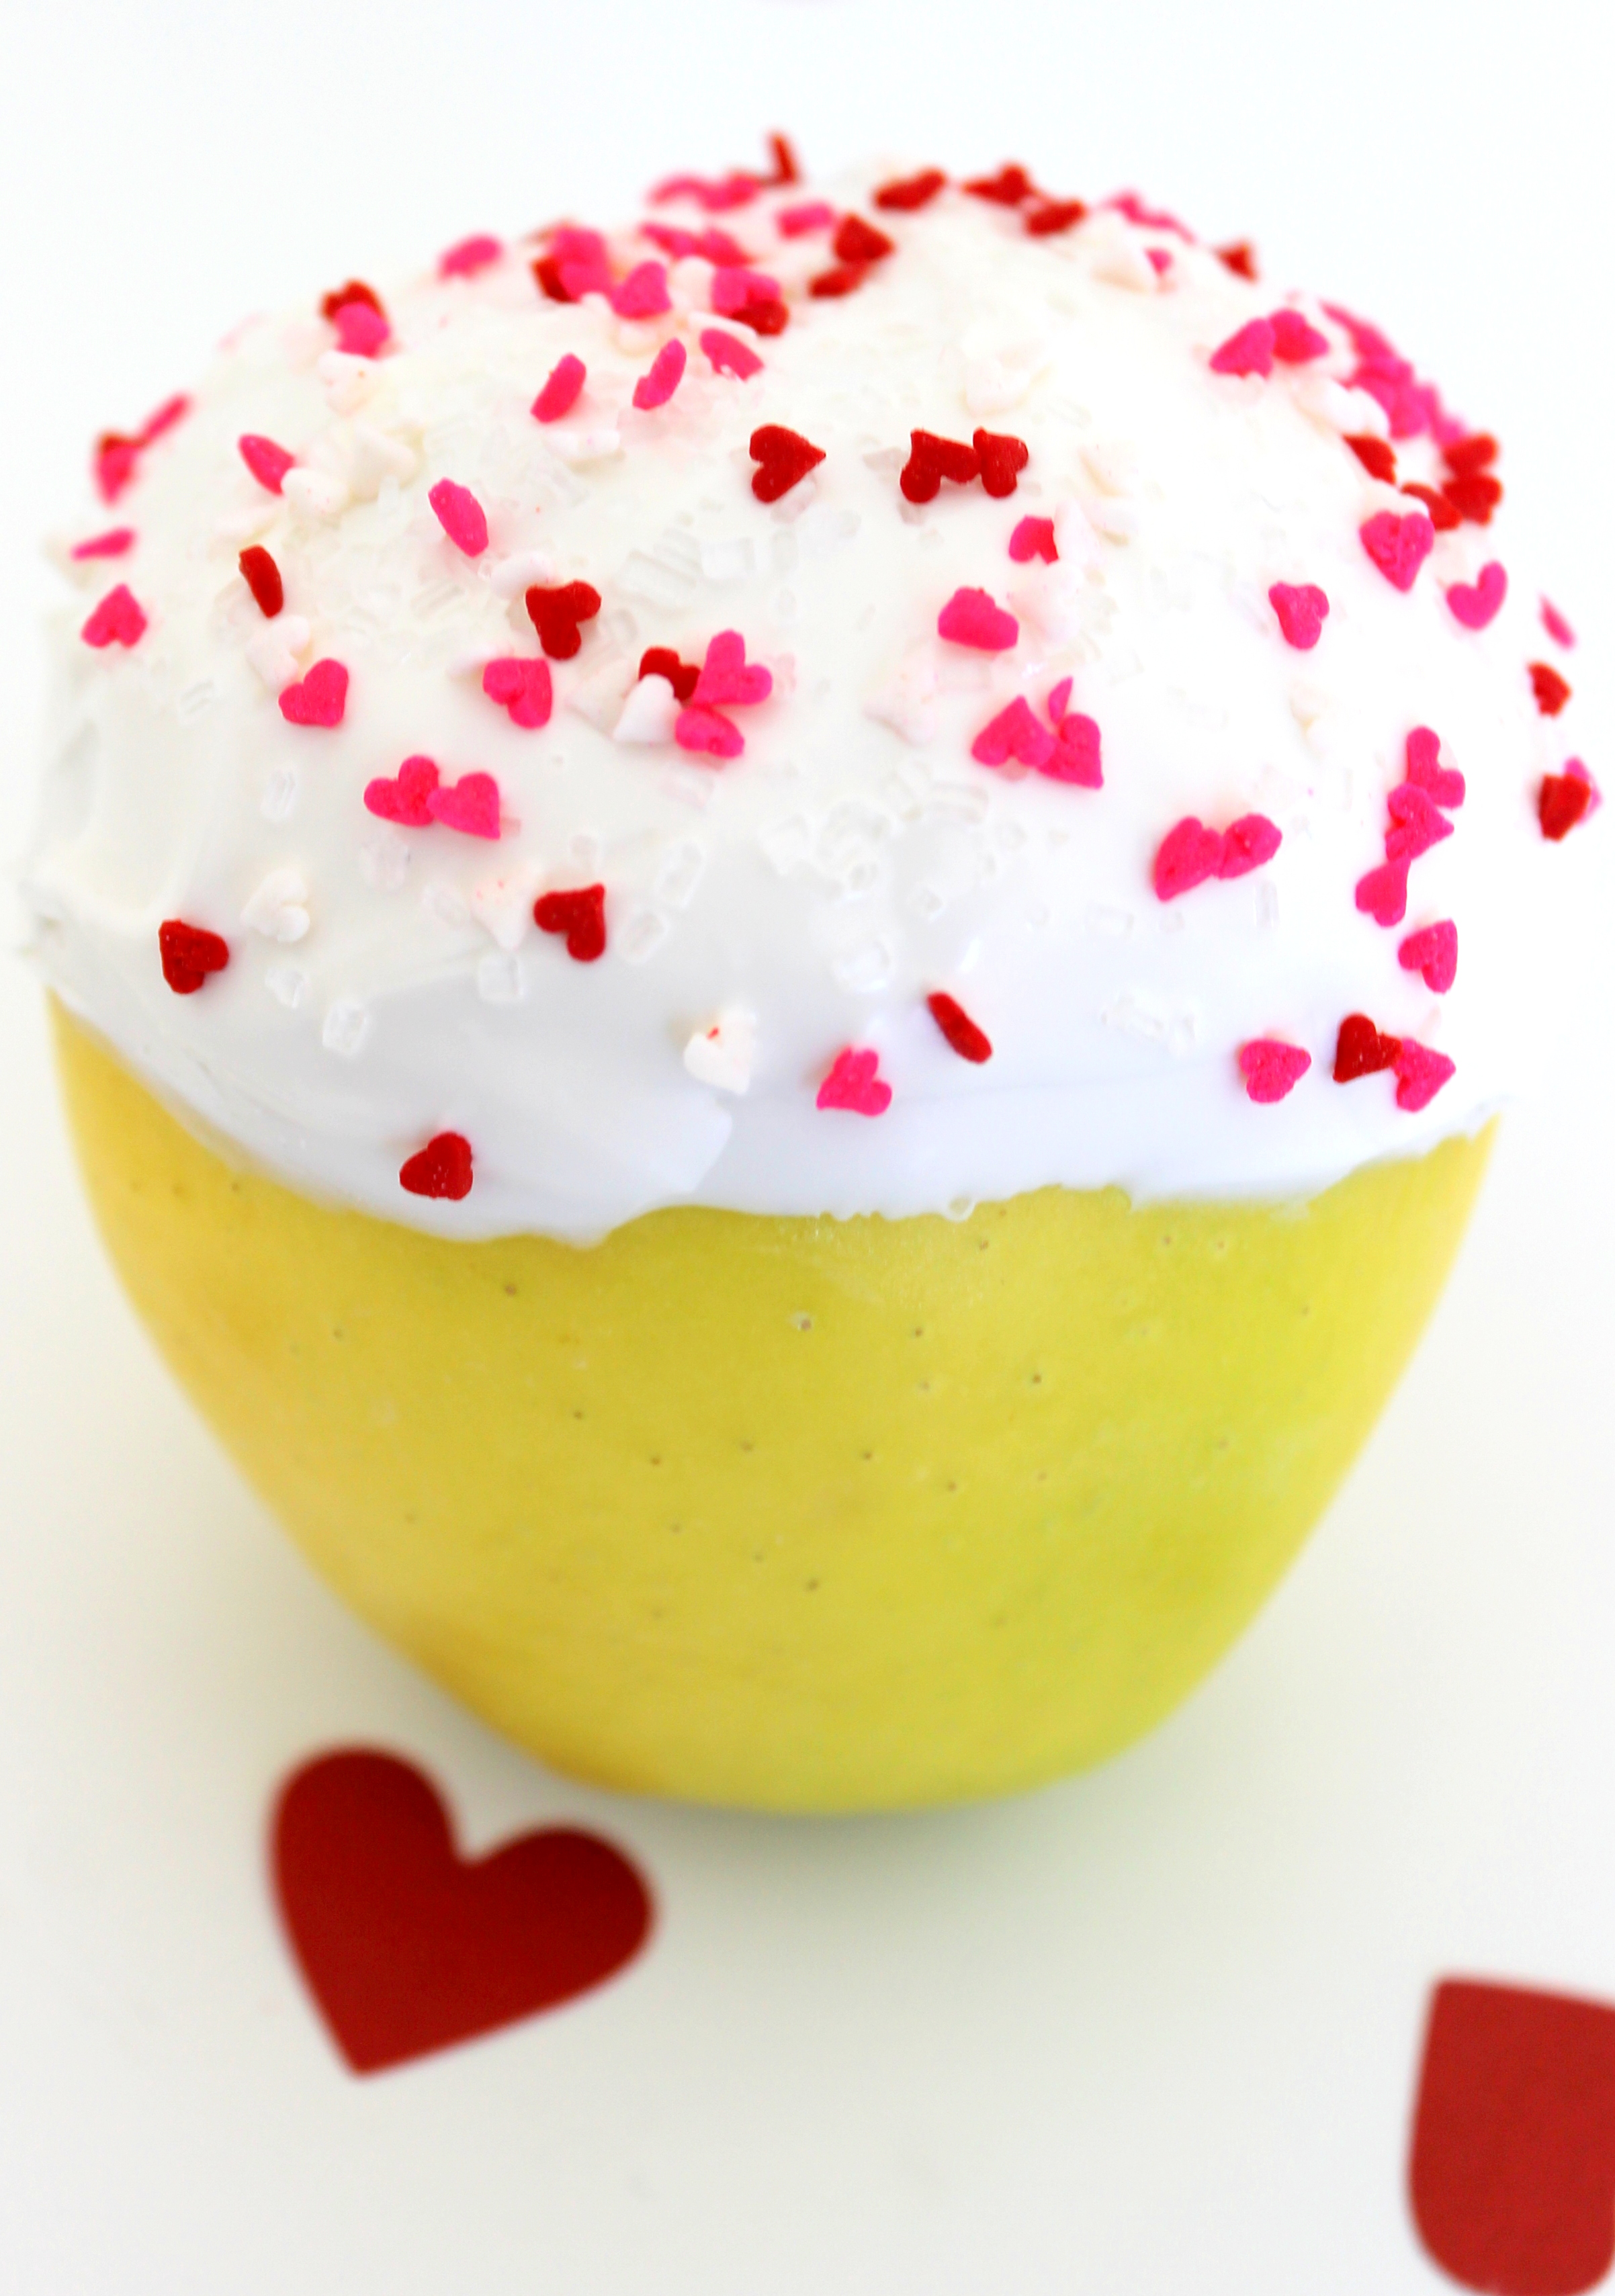 DIY Valentine's Day Apple Close up Decorated